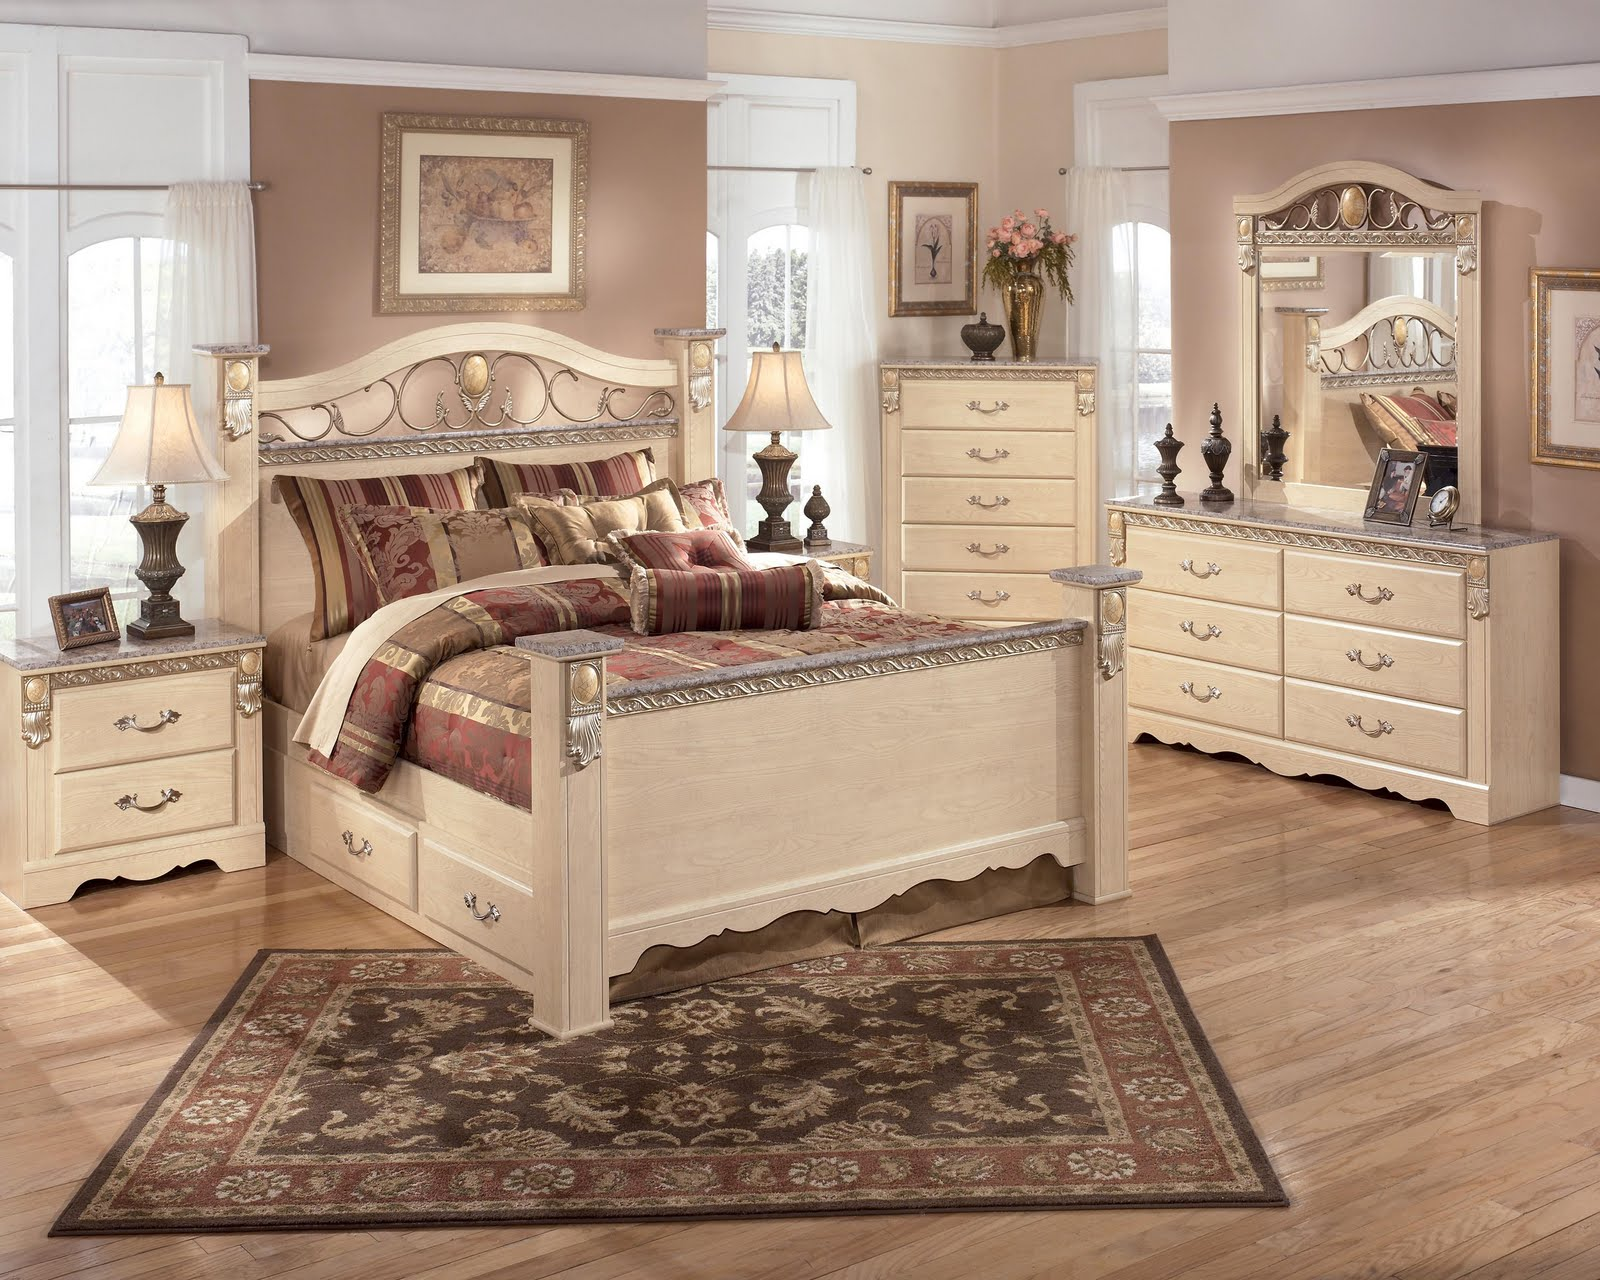 Royal furniture outlet why royal furniture outlet for Popular bedroom sets